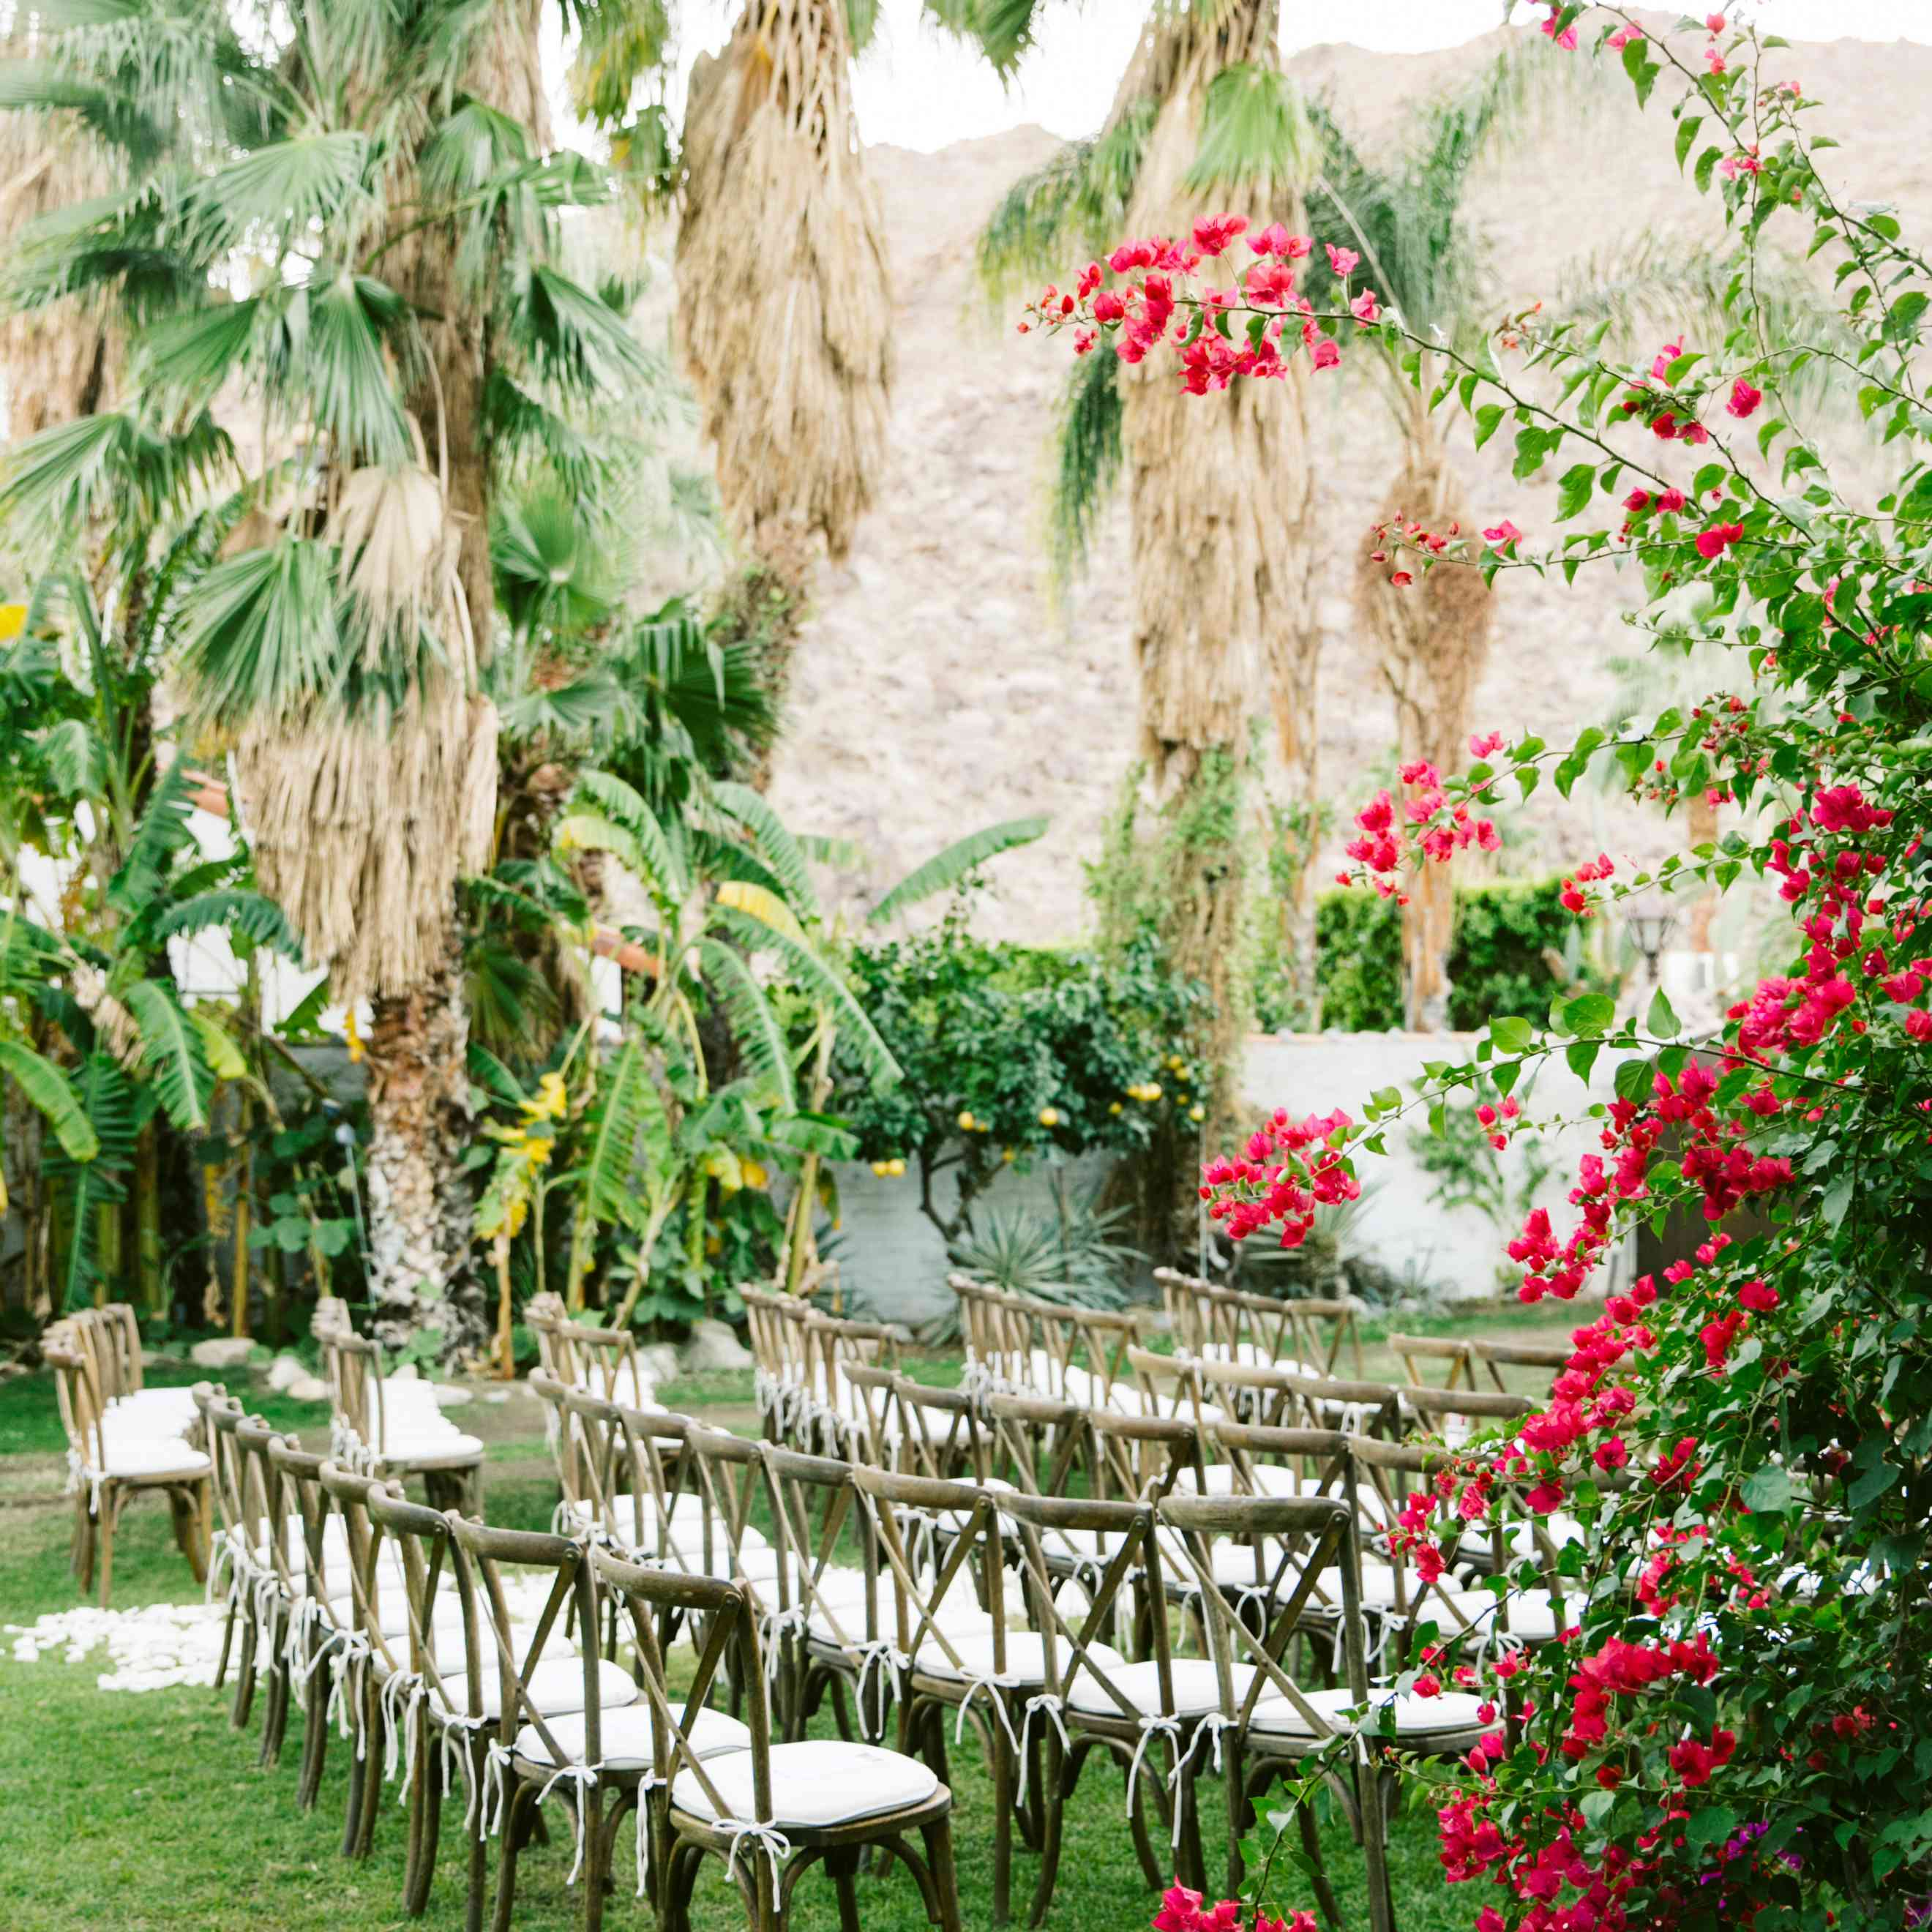 Wedding aisle lined with rose petals and pampas grass hanging upside down